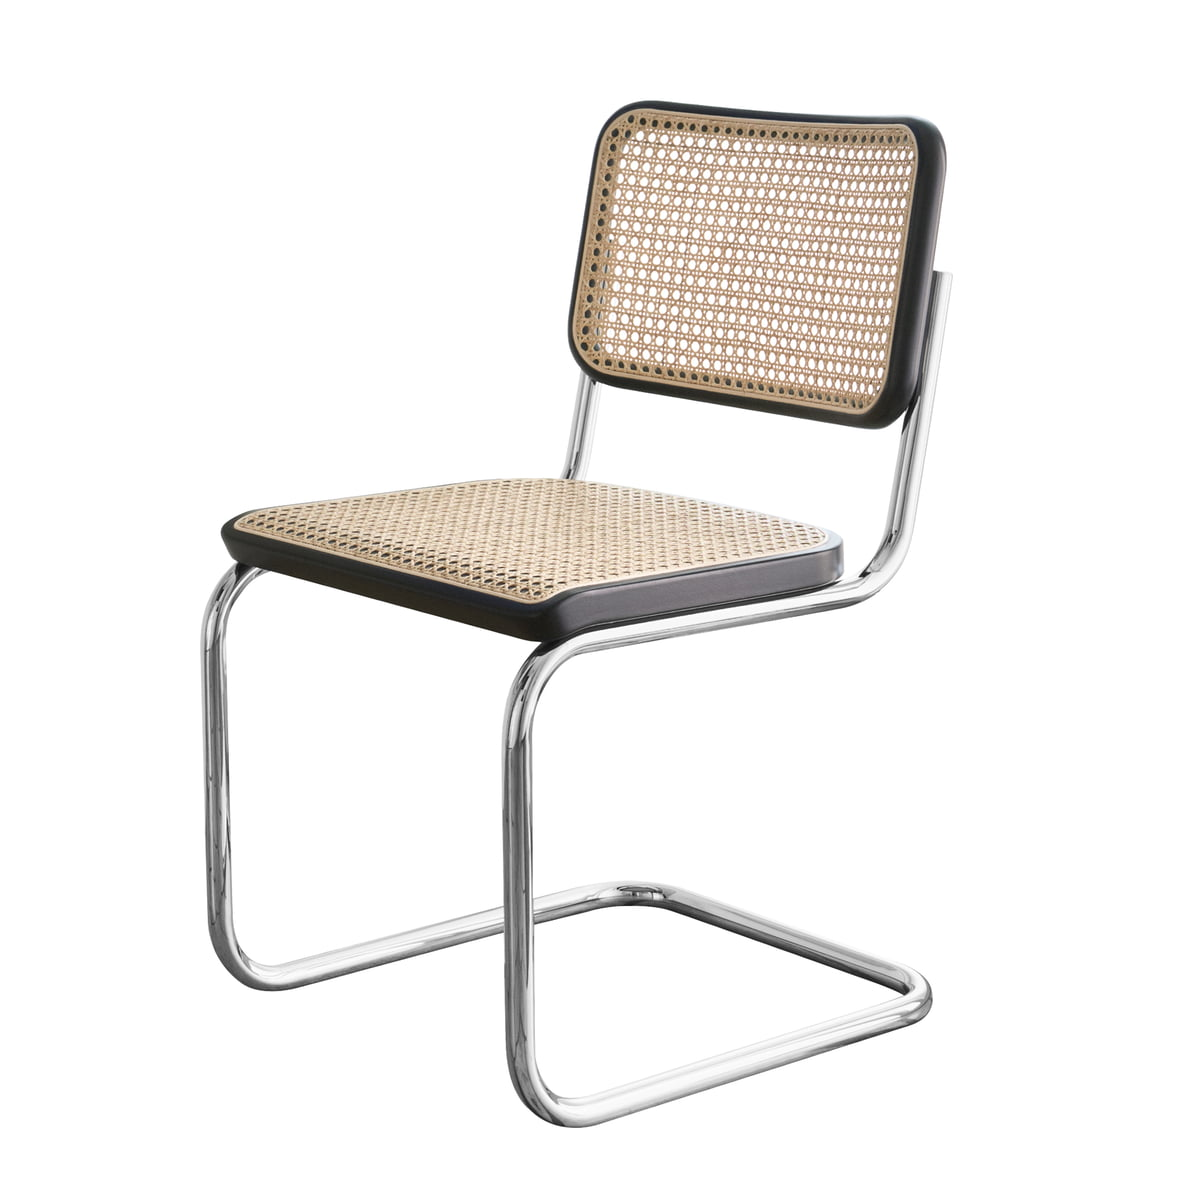 S 32 Cantilever By Thonet